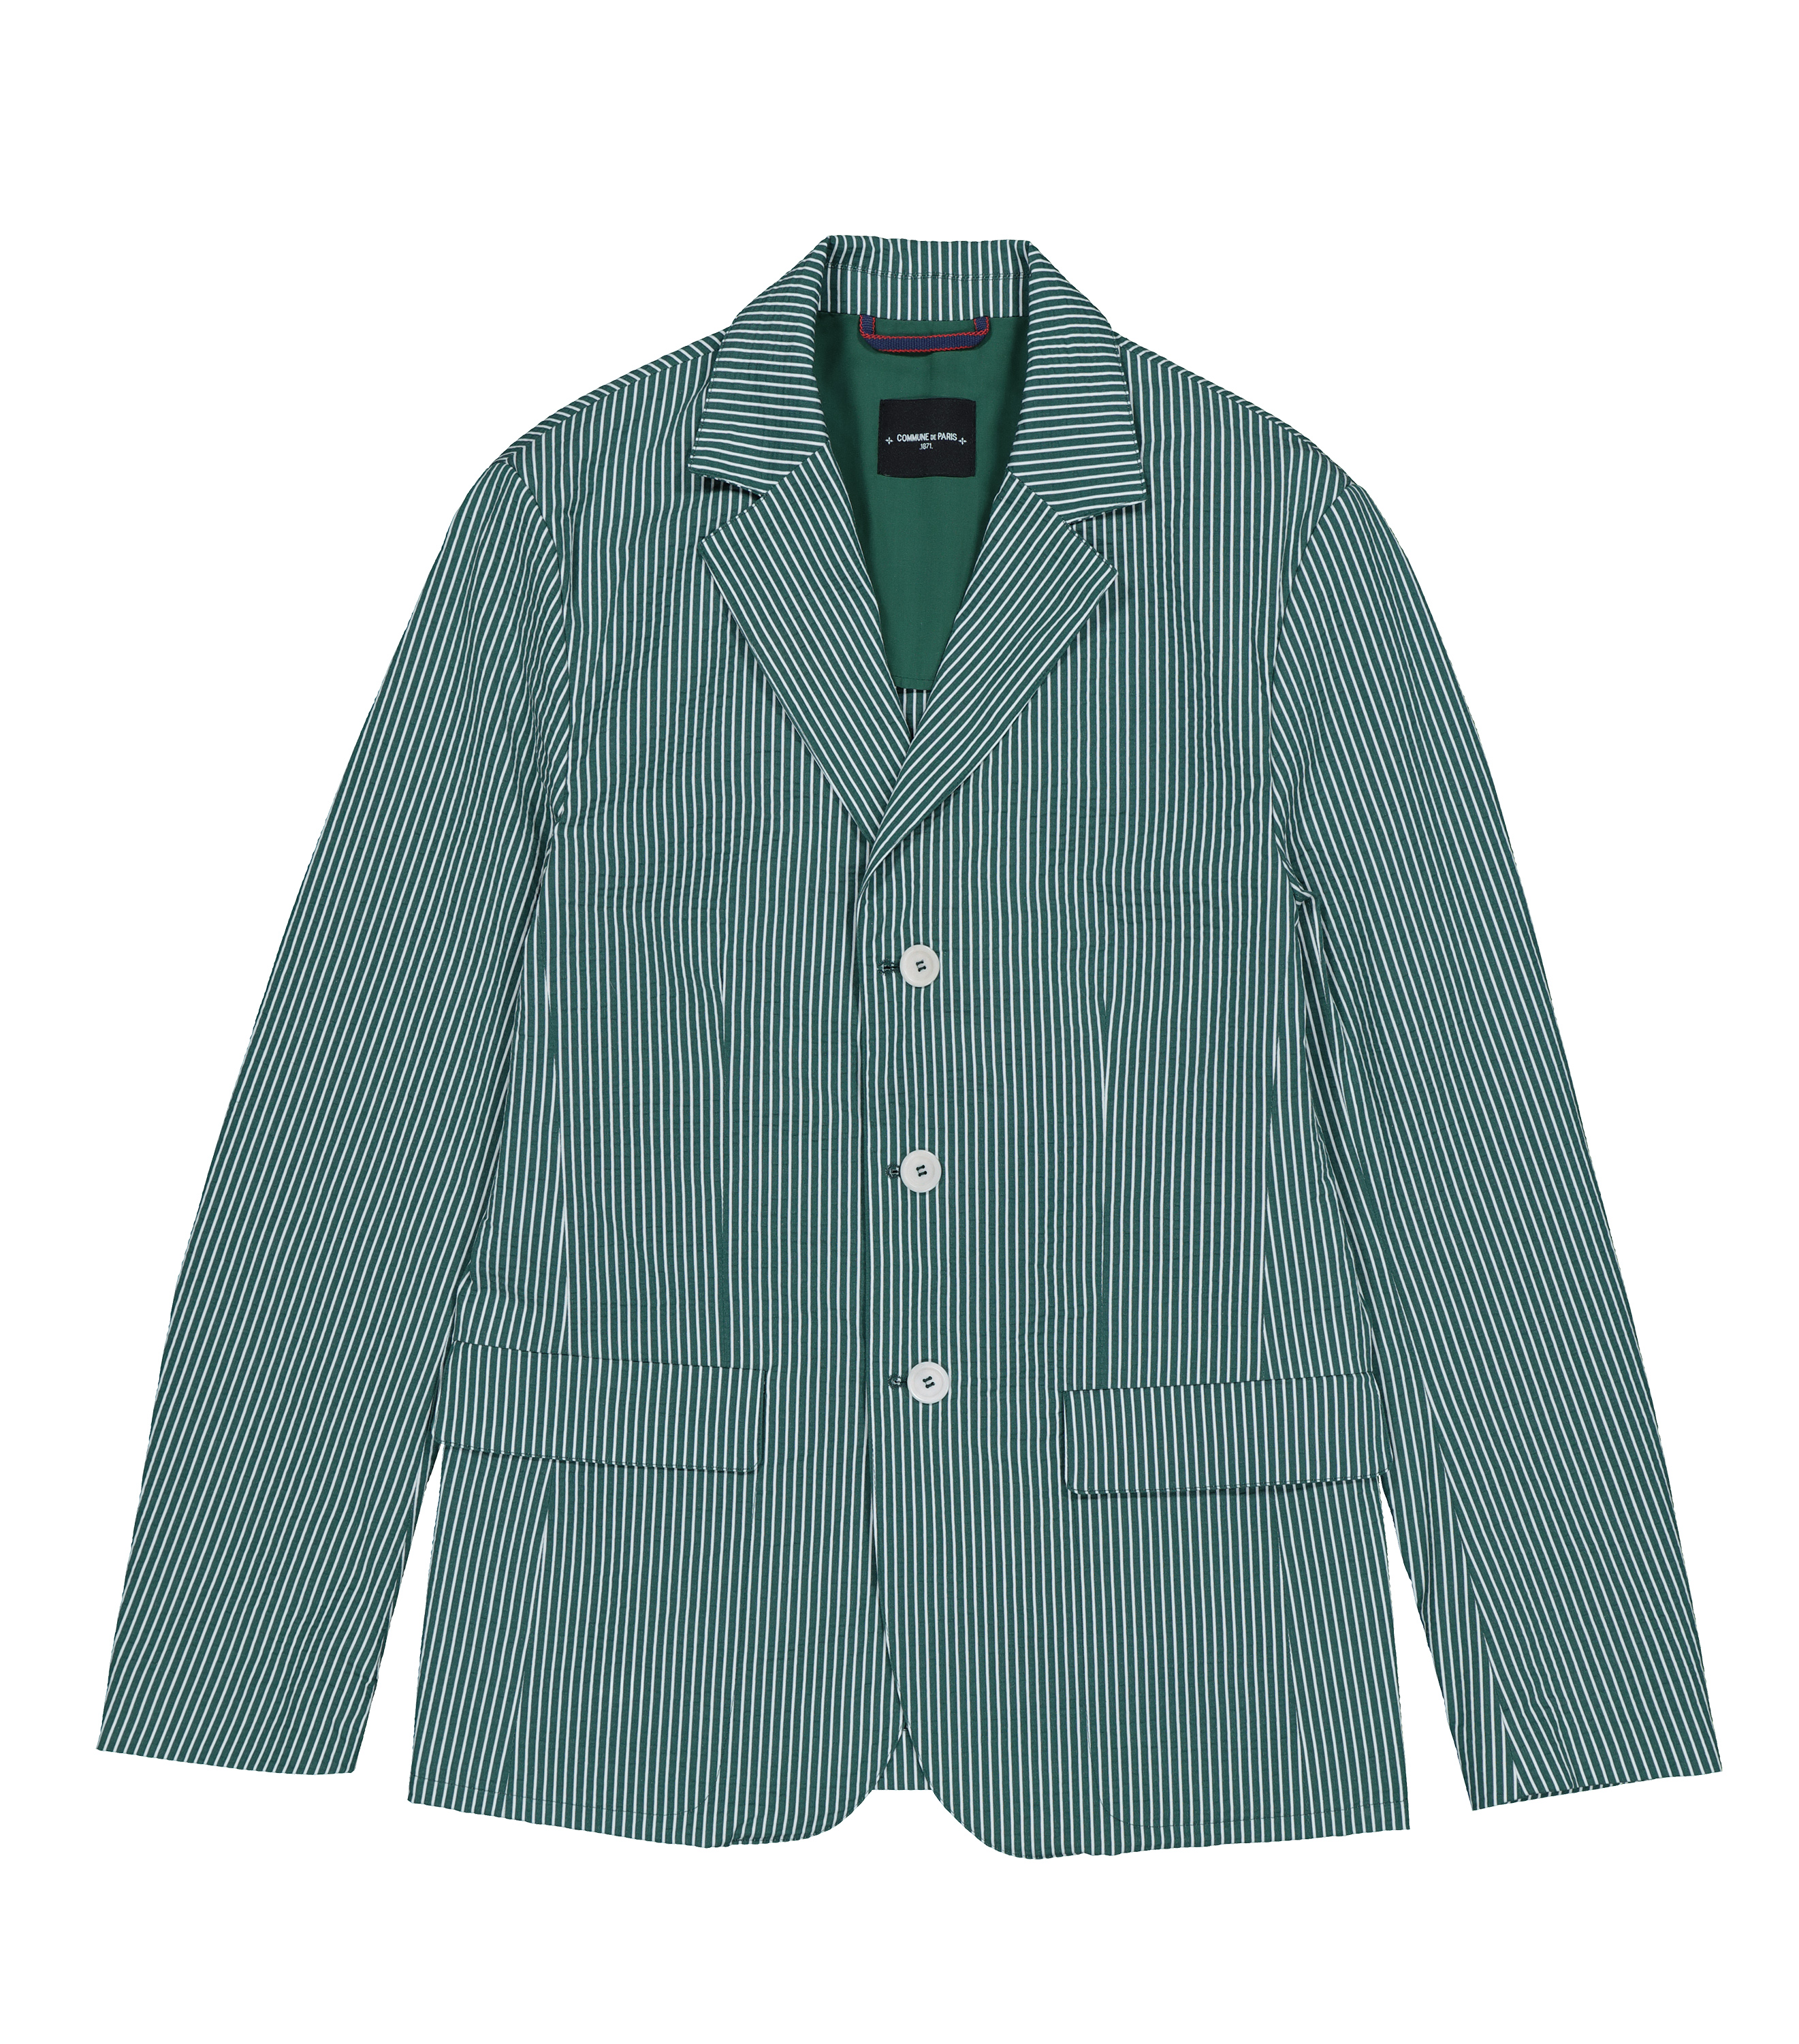 SUIT JACKET PROTOT - Green stripes